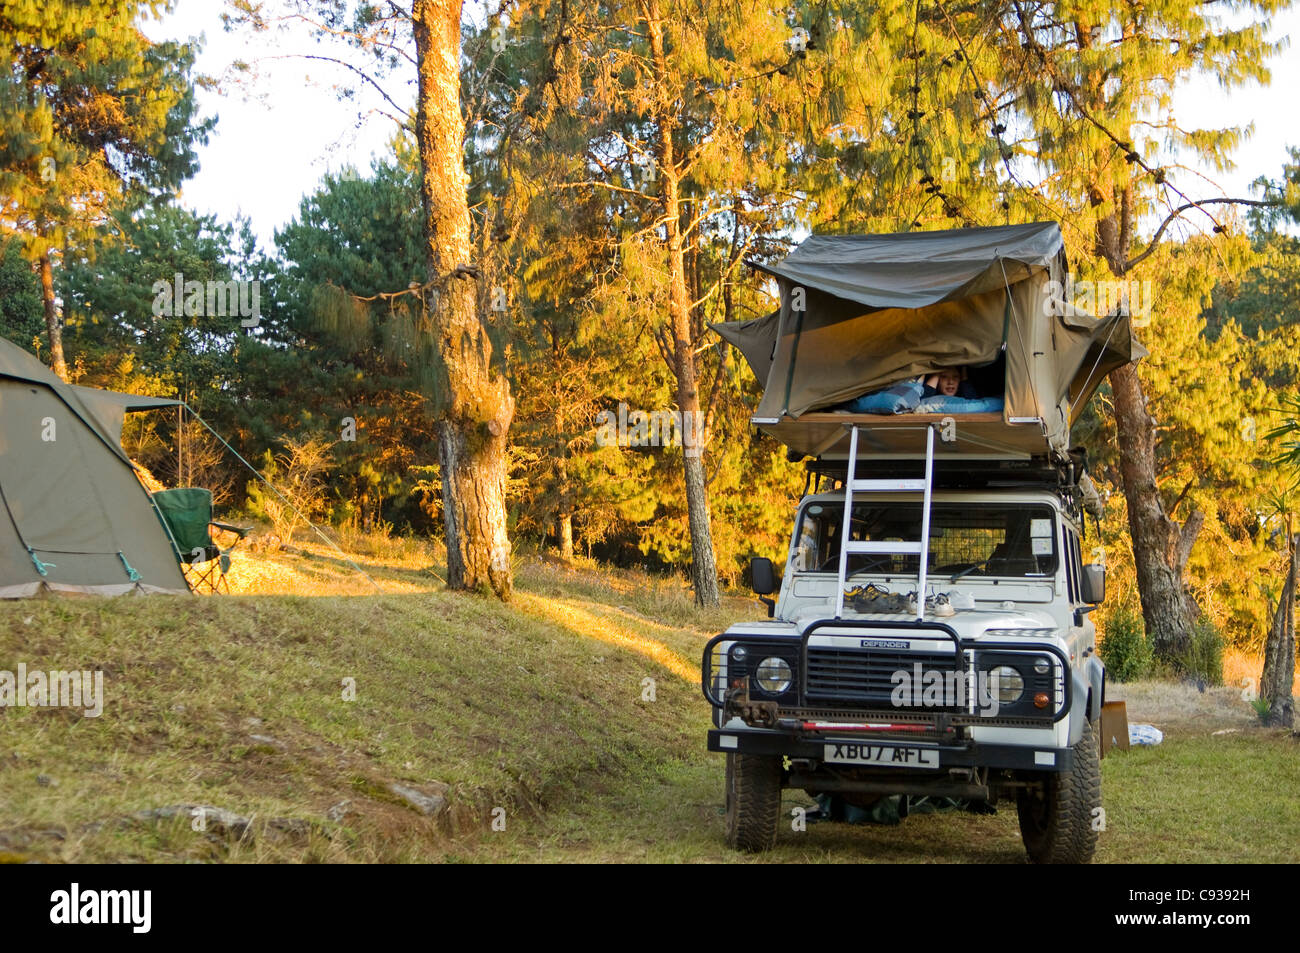 Malawi, Zomba Plateau.  Boy on a family self-drive  safari in the roof tent on the landrover.  (MR) - Stock Image